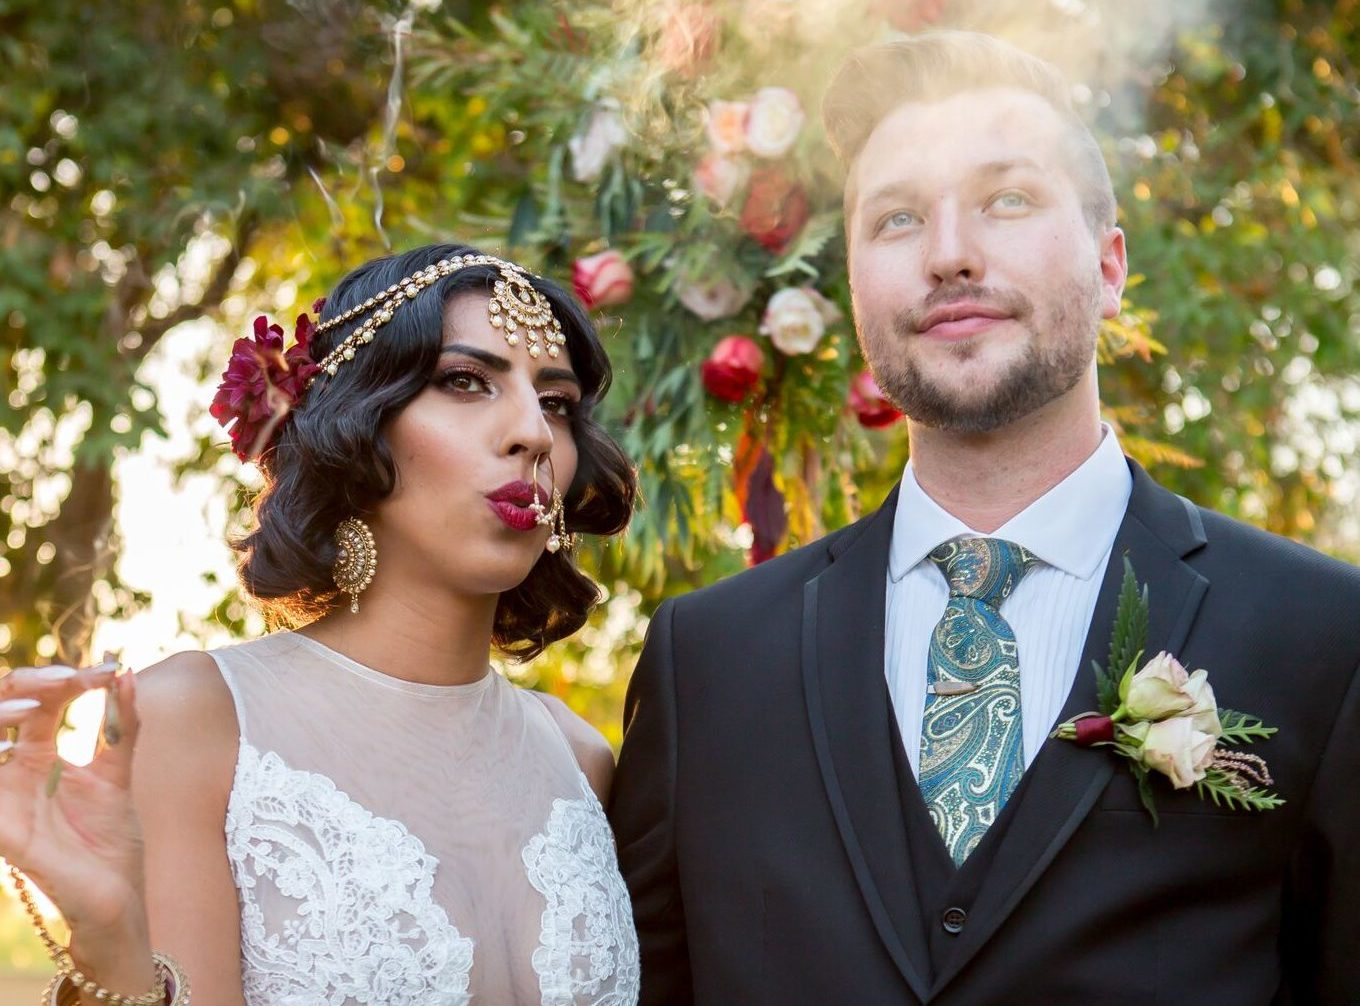 This California couple gave us an inside look at their weed-themed wedding